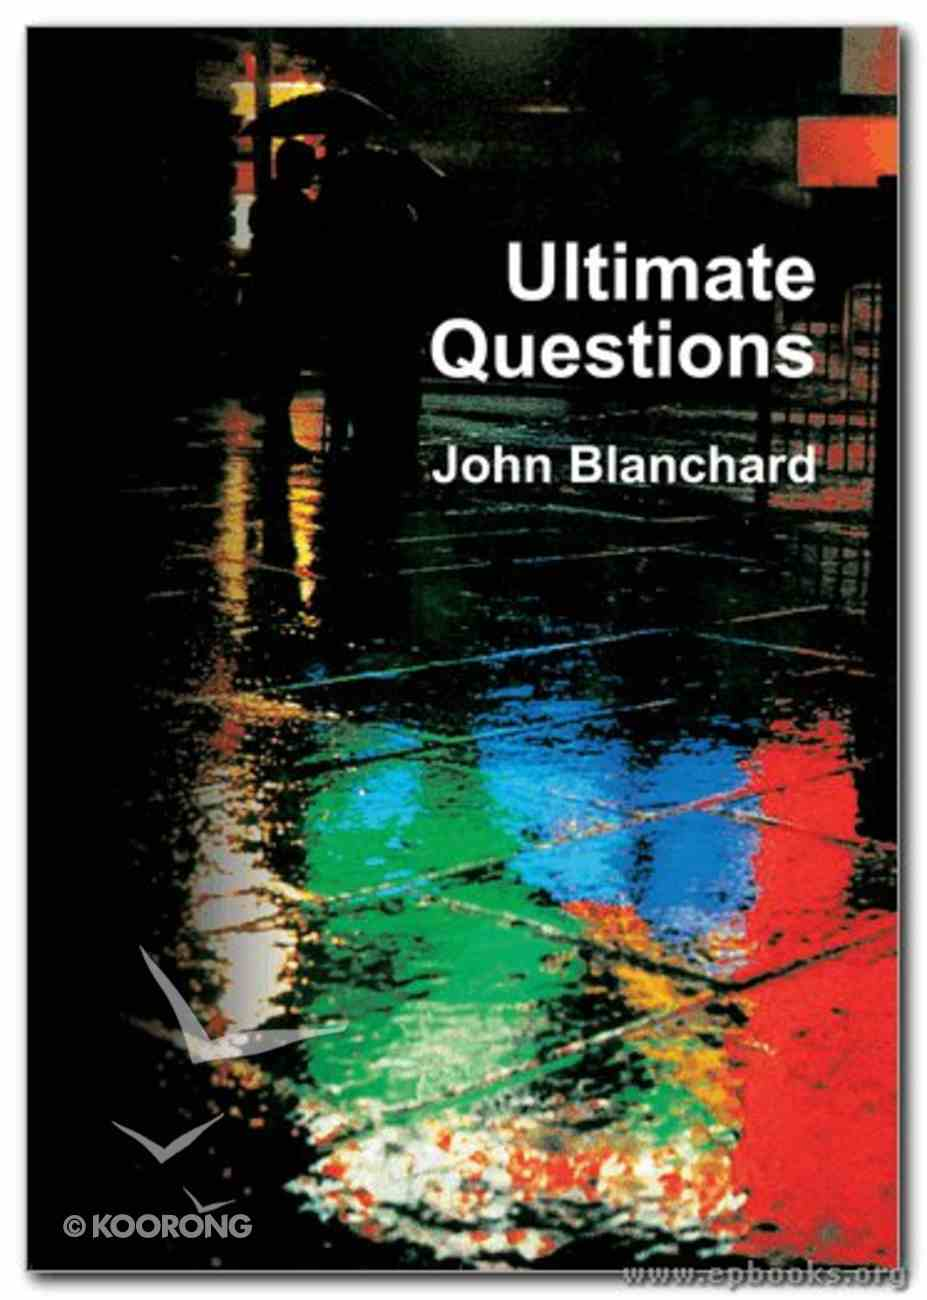 Ultimate Questions (Chichewa) Booklet